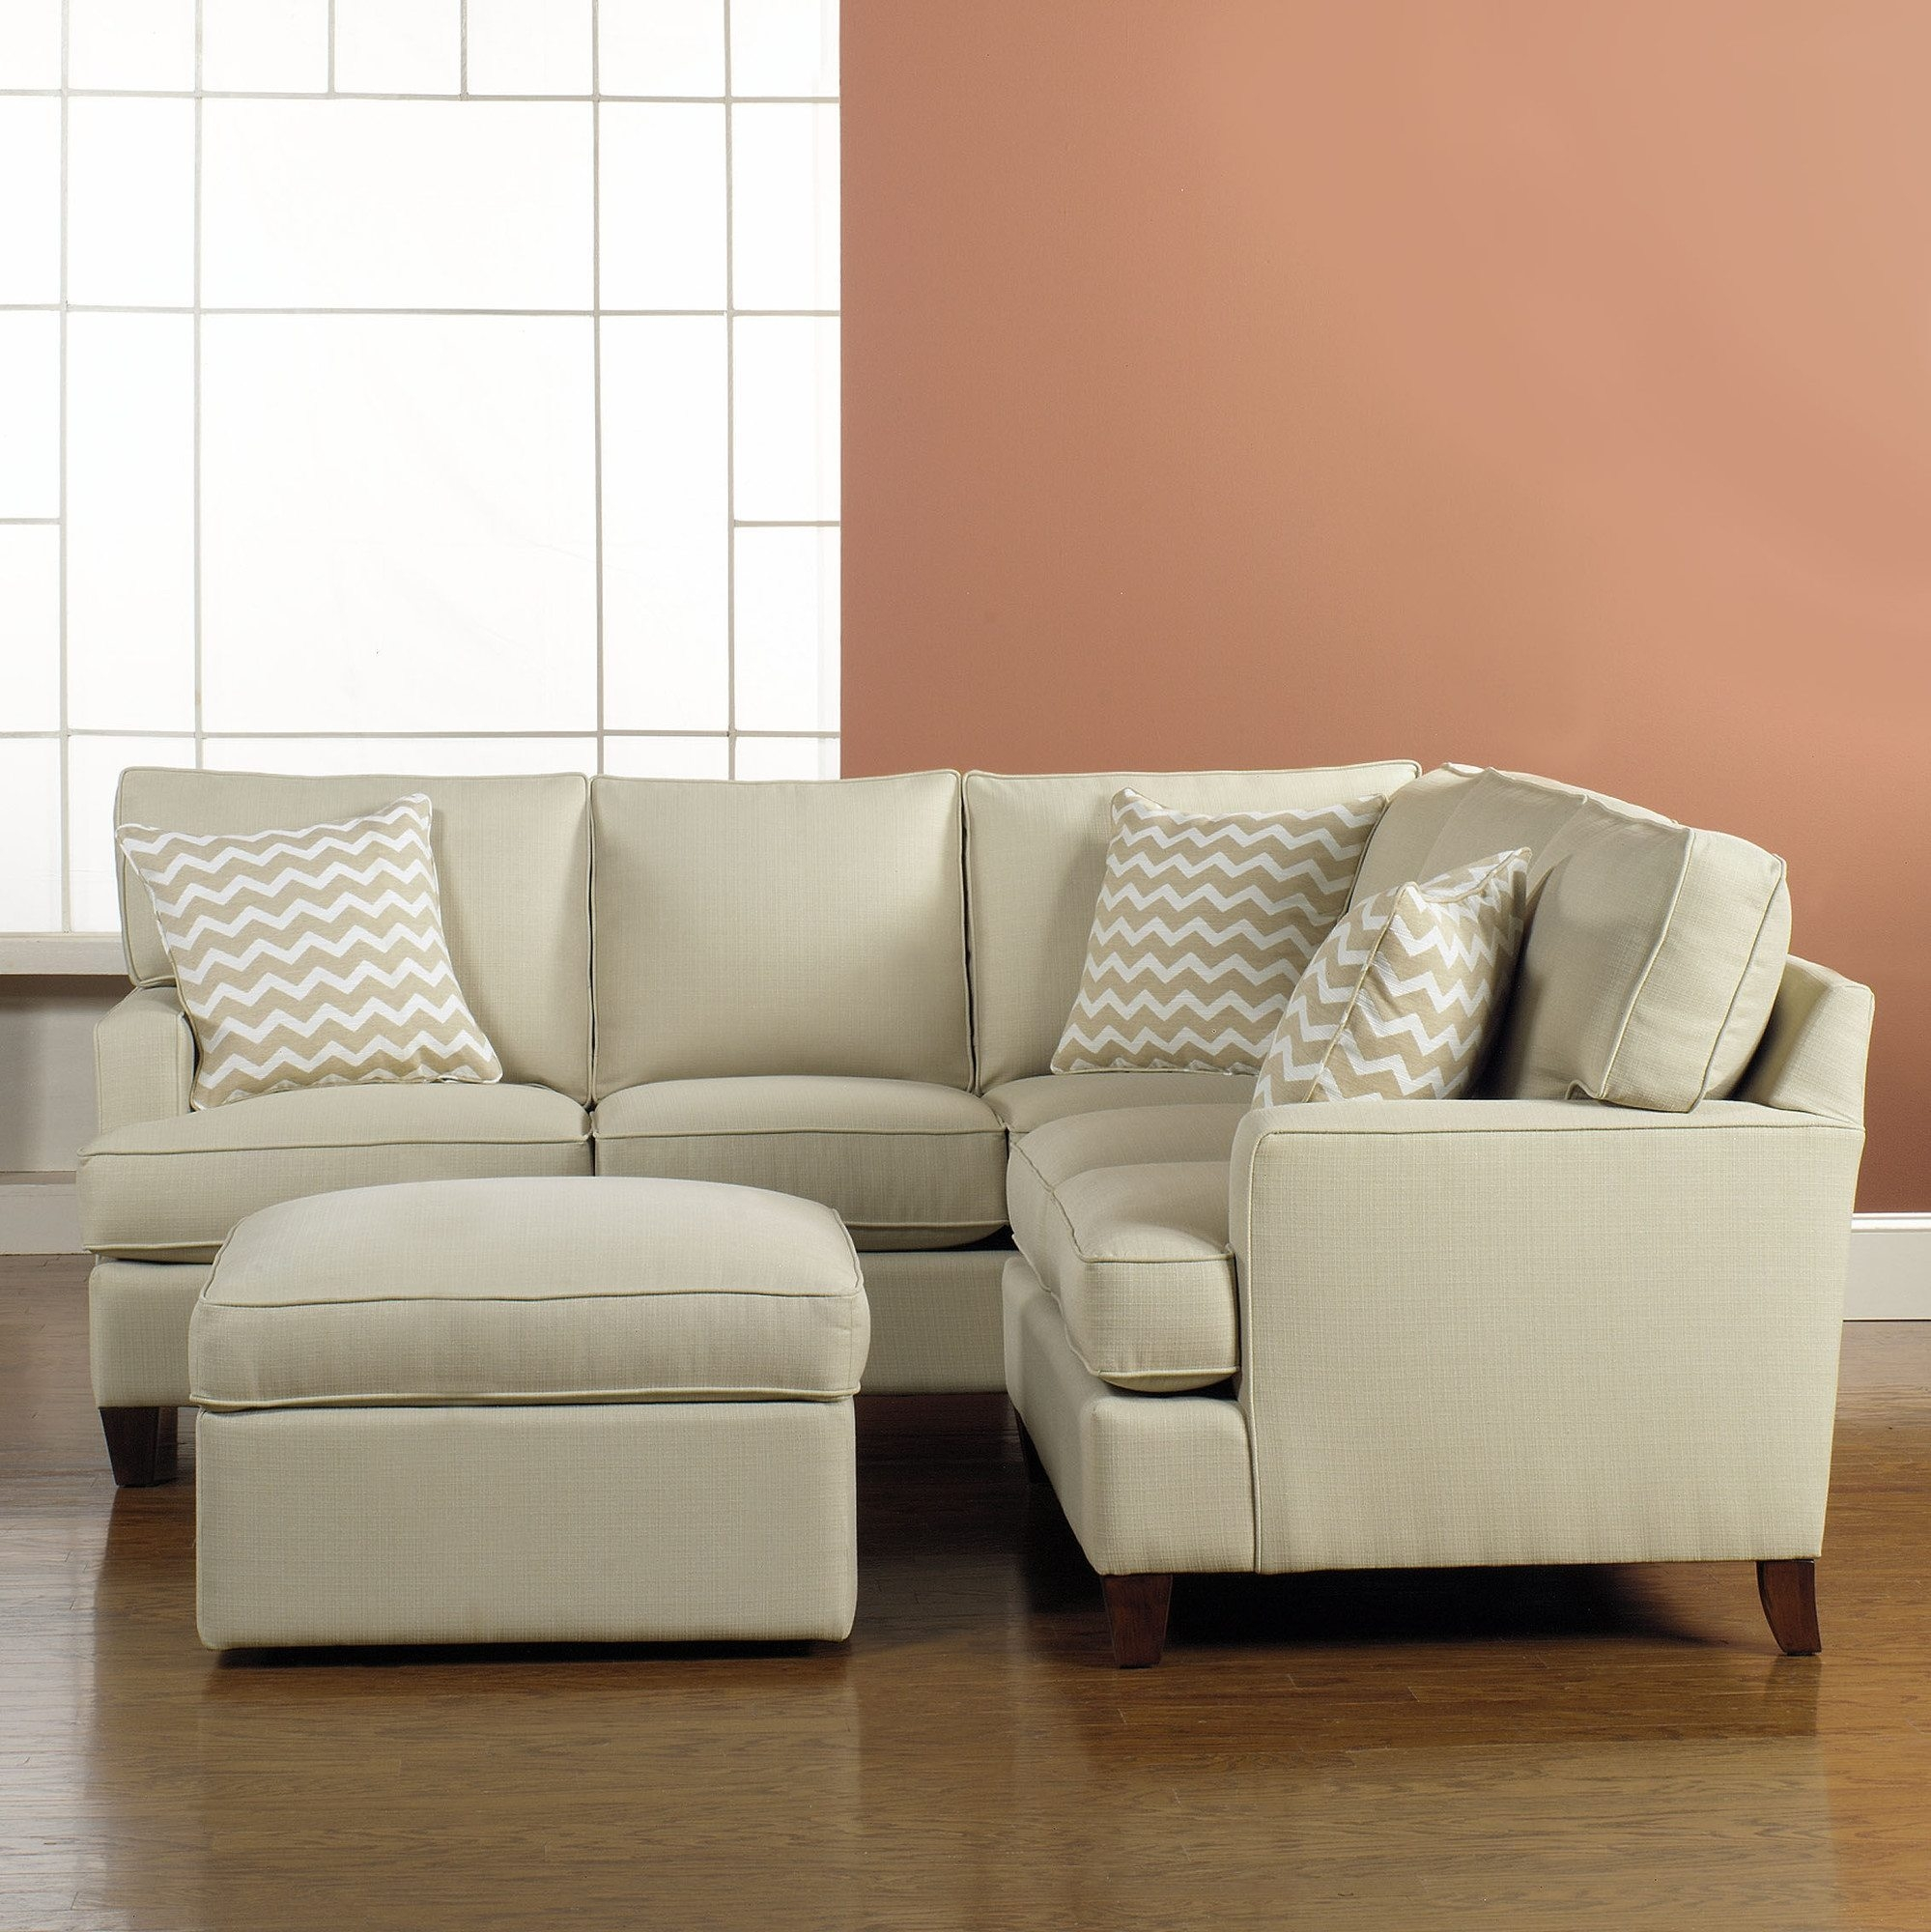 Beautiful Cheap Sectional Sofas For Small Spaces 85 On Customized Throughout Customized Sofas (#1 of 12)